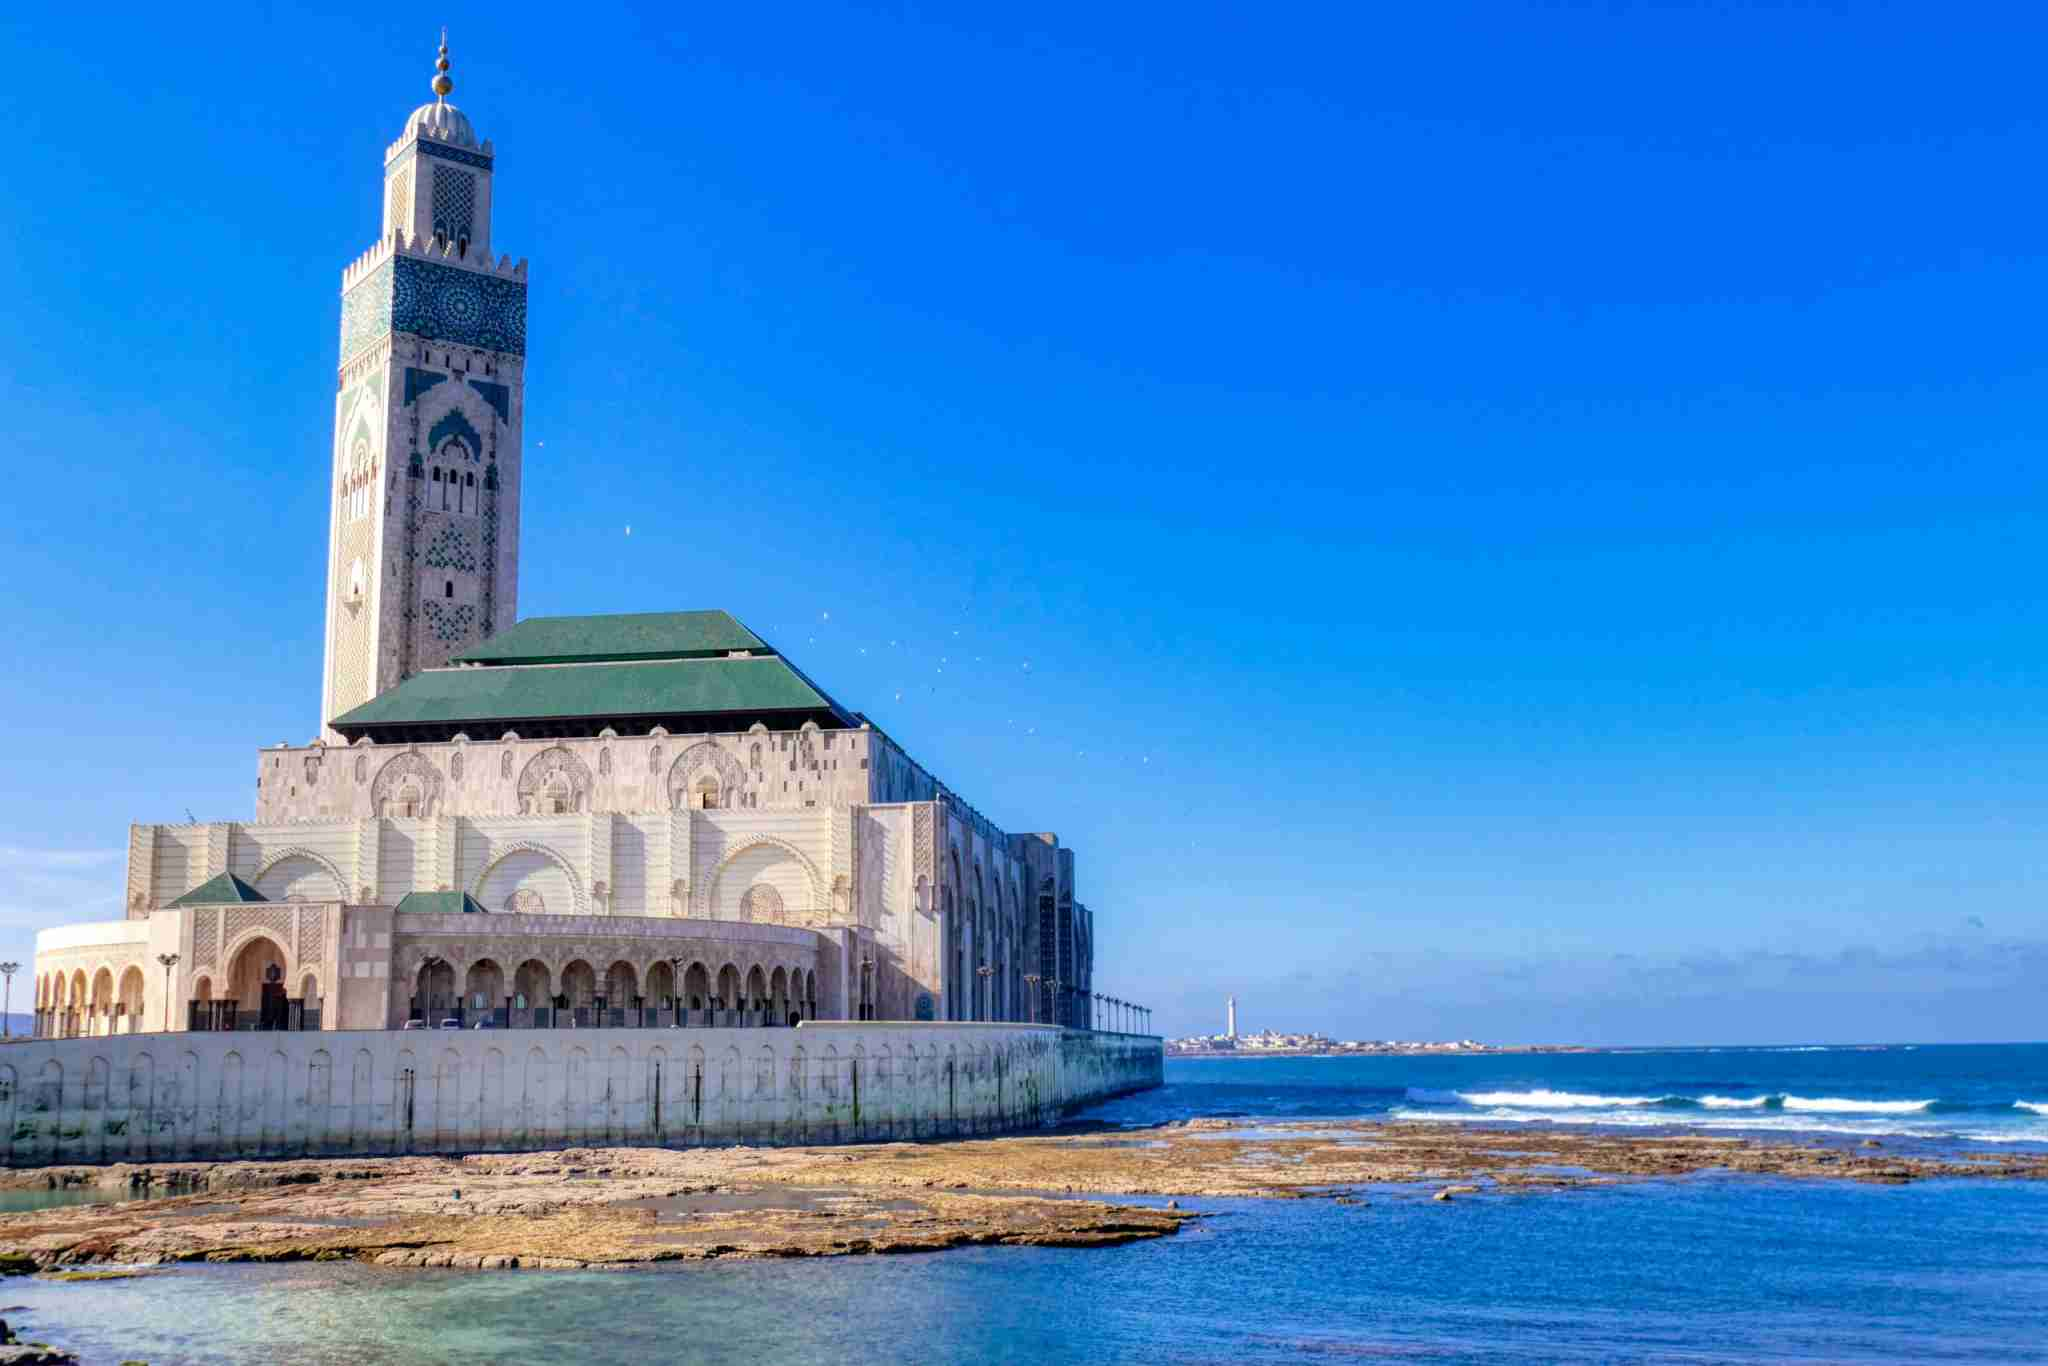 Casablanca - Morocco. Panoramic view of Casablanca waterfront area with Hassan II Mosque in the background (Photo by Piero Damiani/Getty Images)